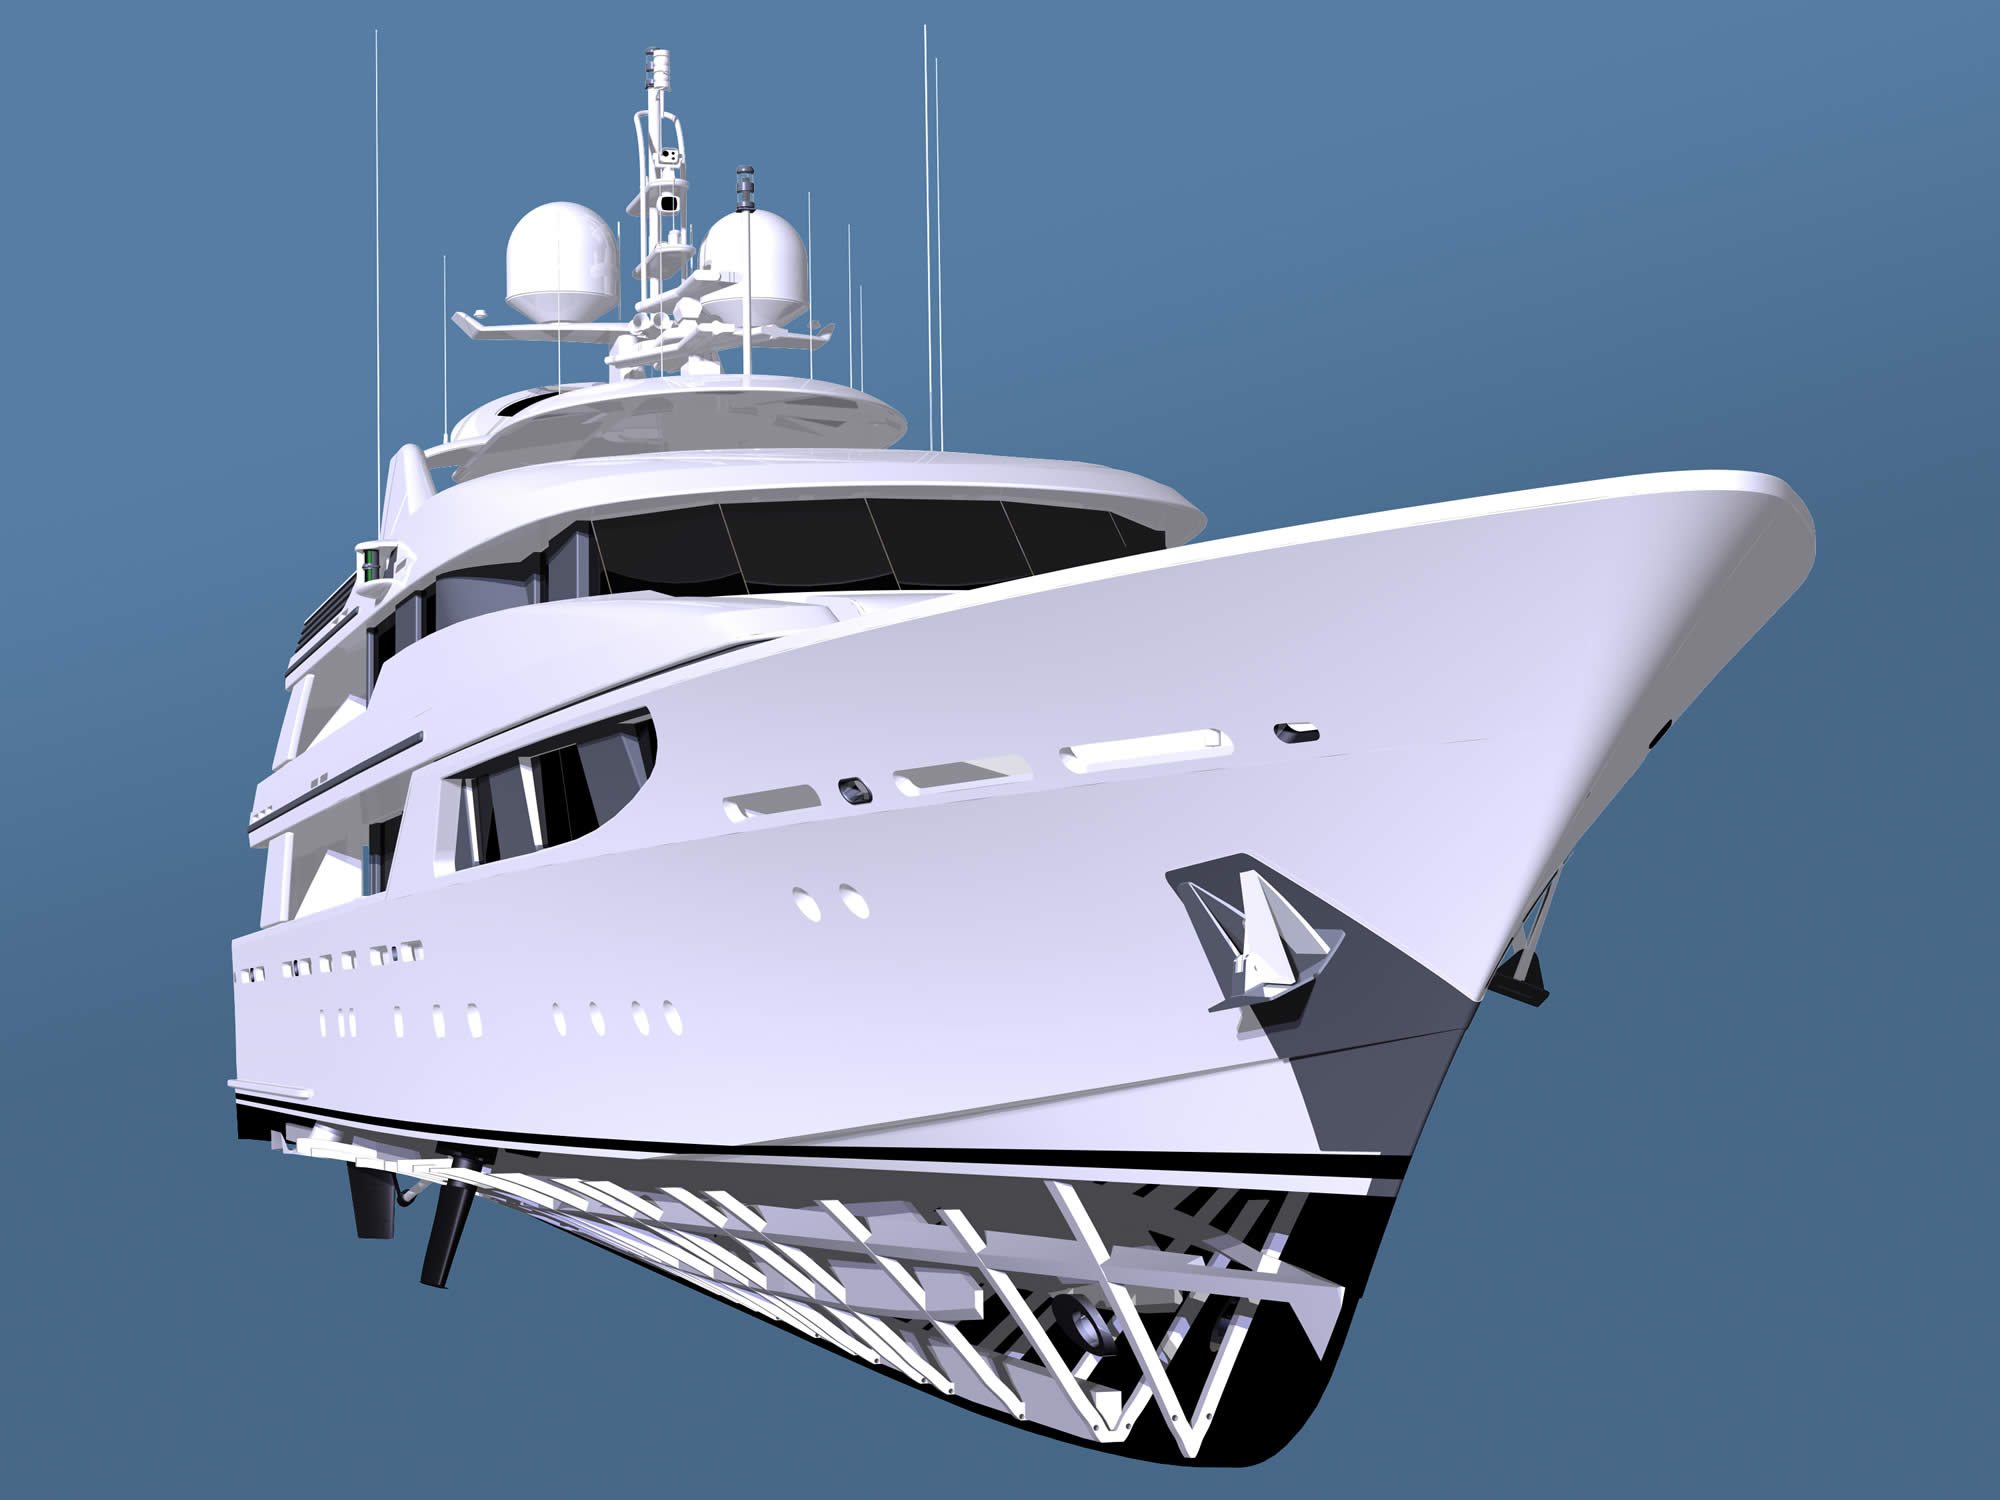 Maritime Kommode Marine And Offshore 3d Design And Additive Manufacturing Solutions